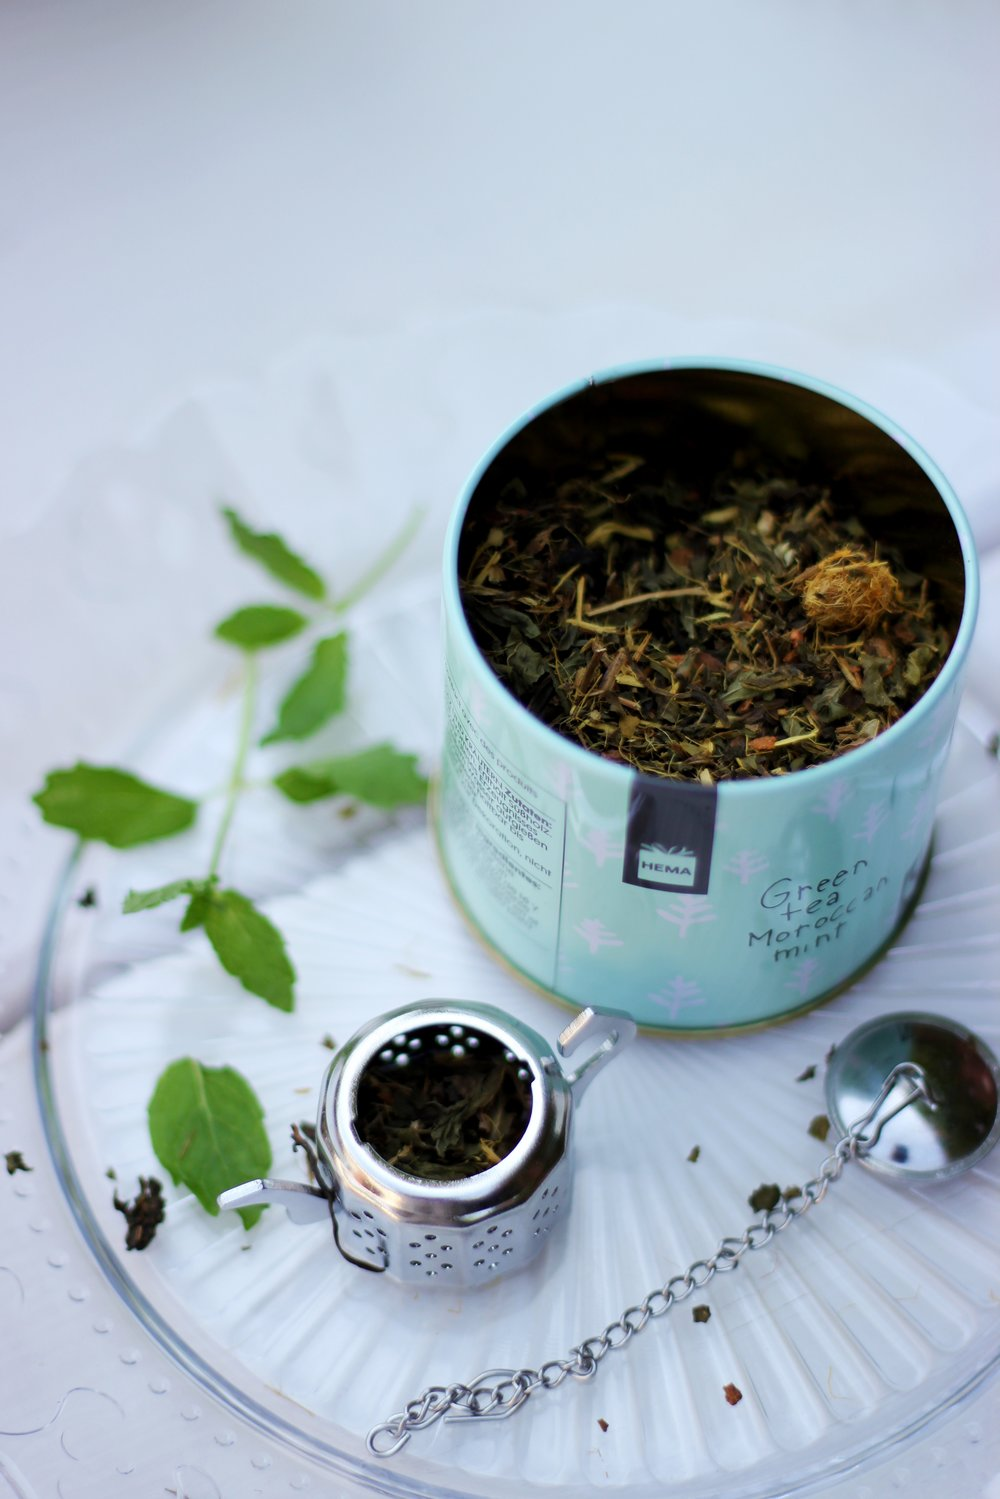 Green tea, one of the healthiest drinks on the planet.